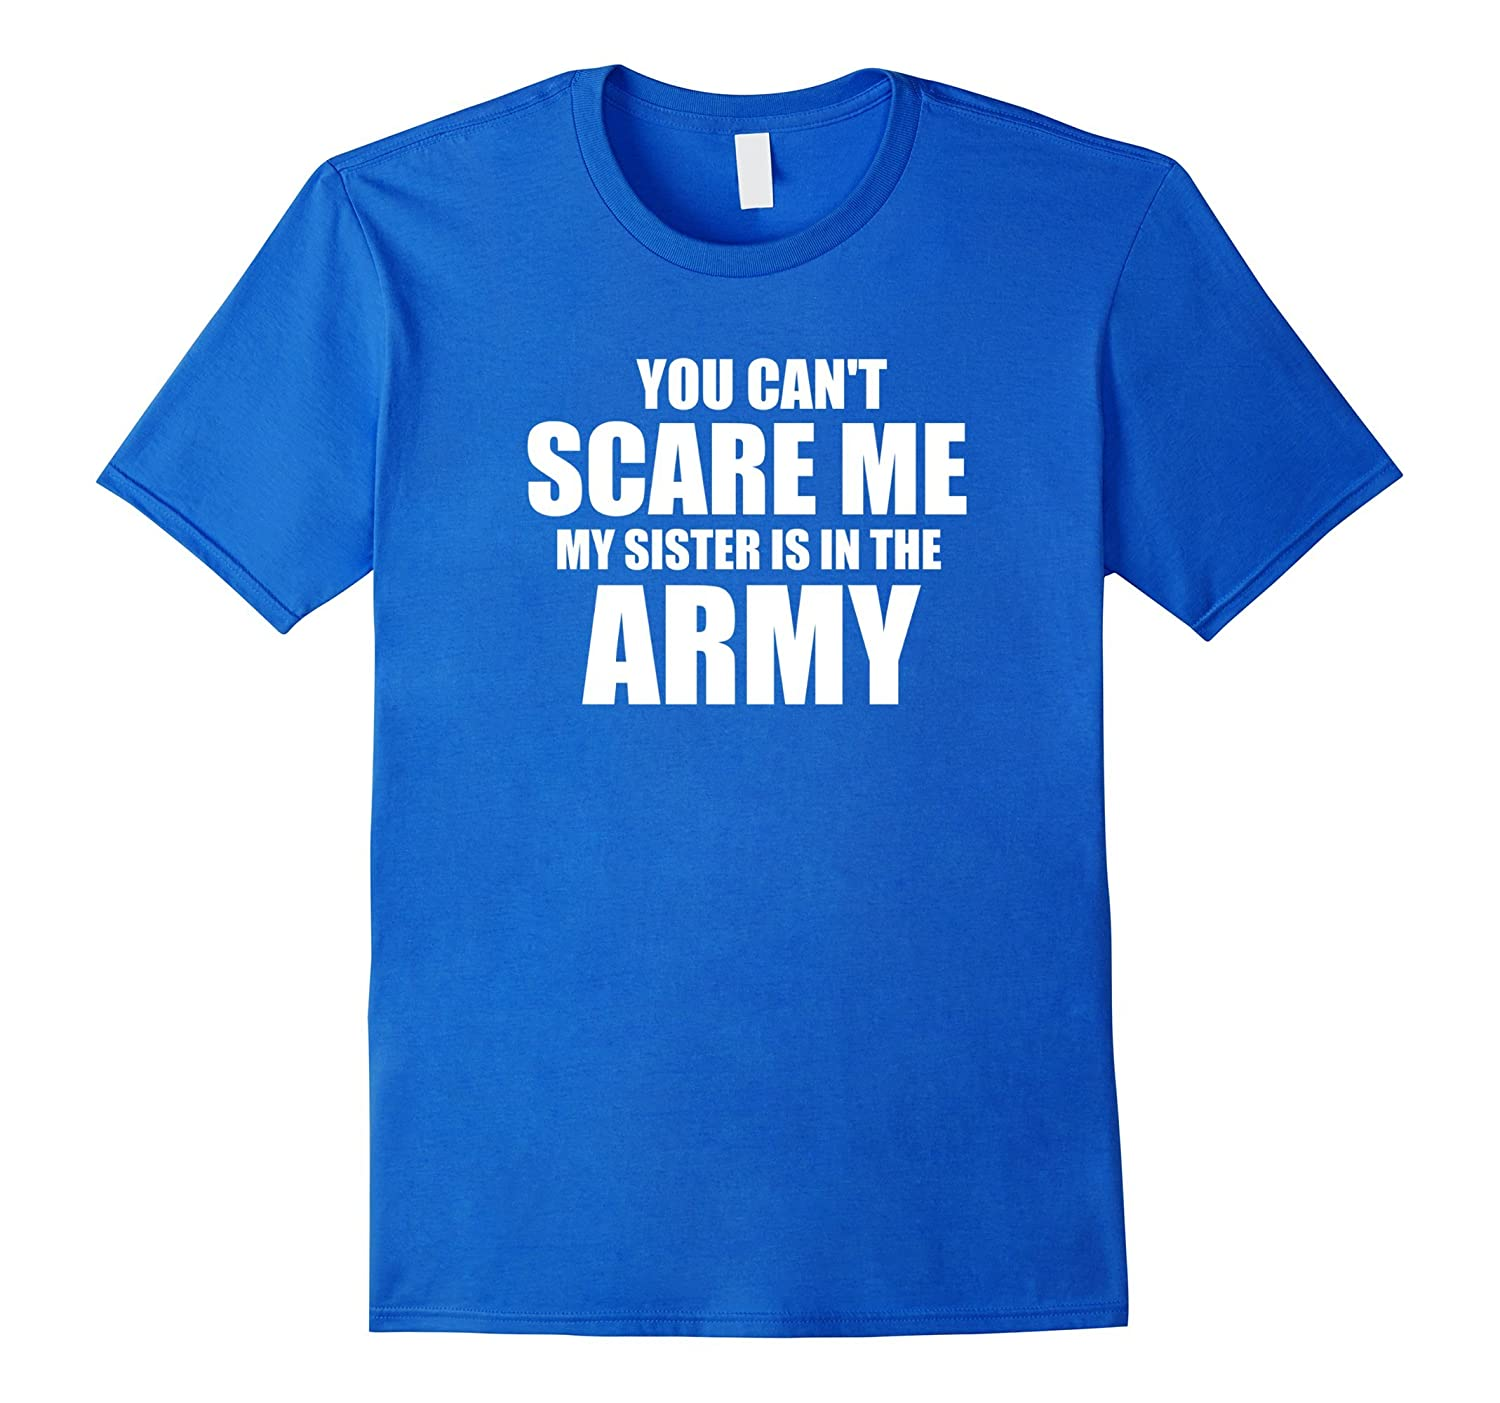 You can't scare me my sister is in the army